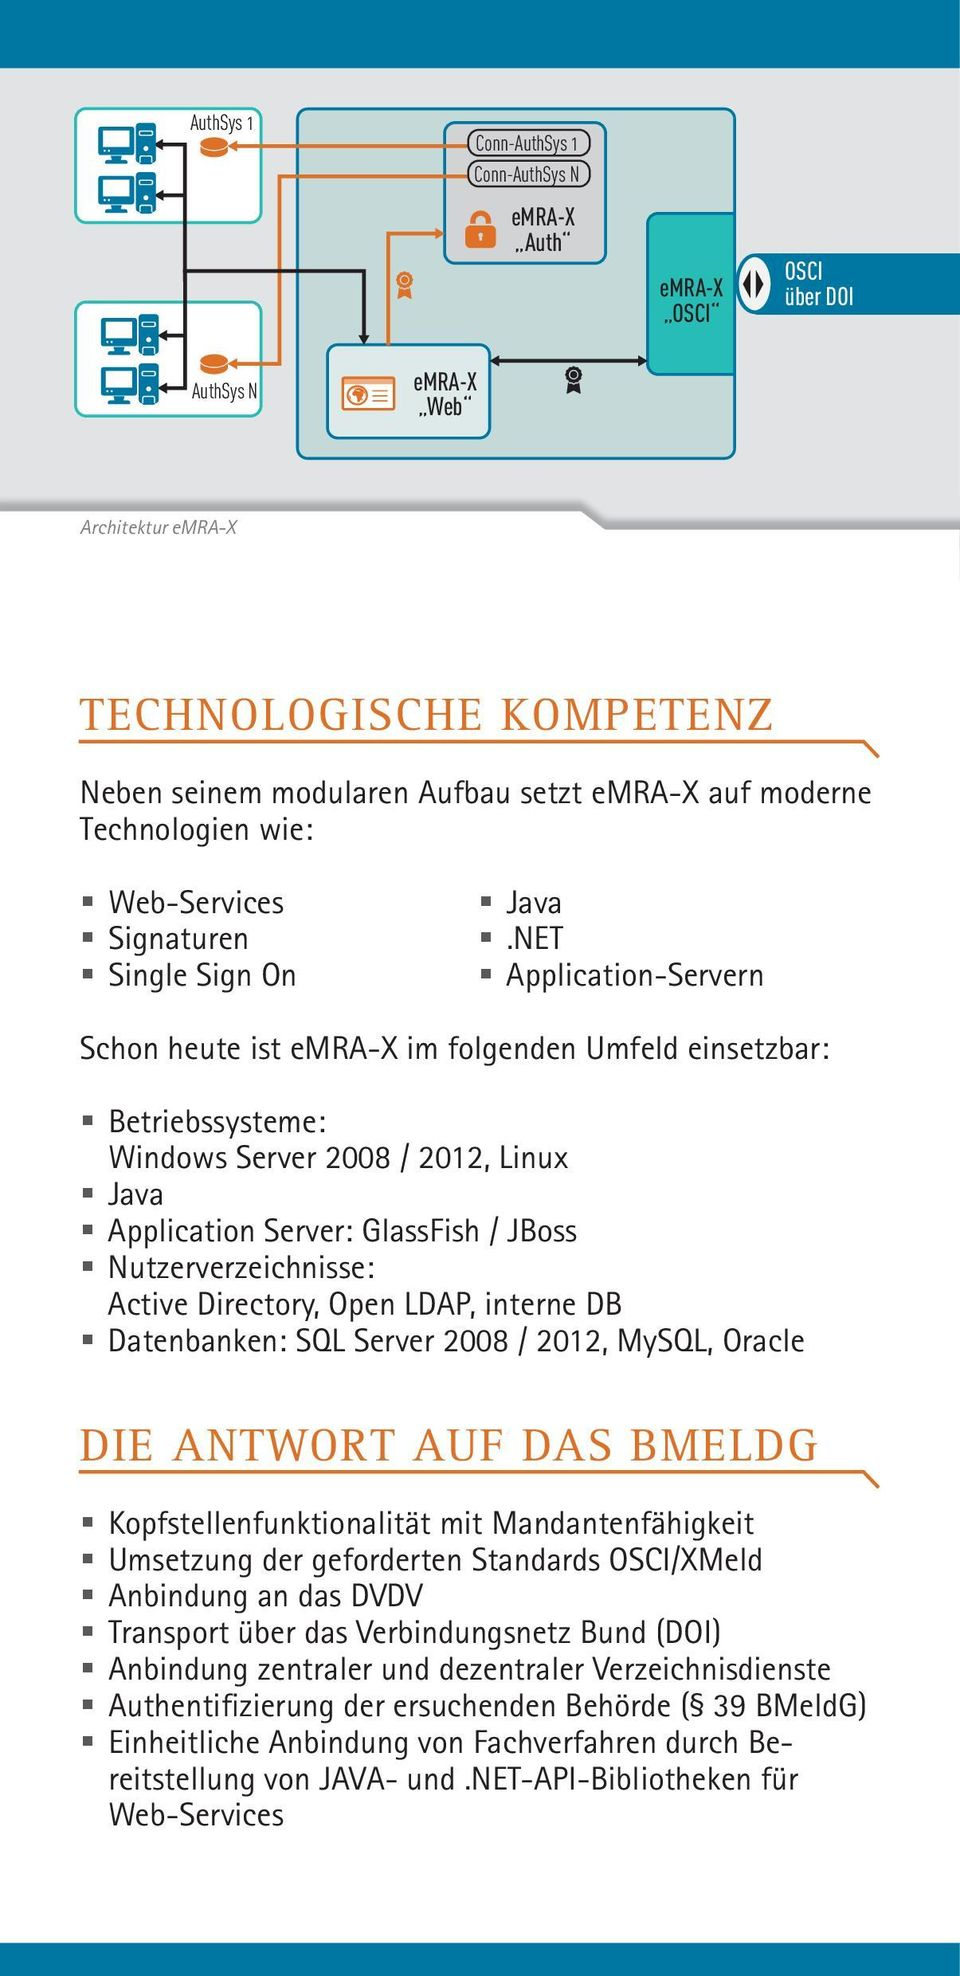 NET Application-Servern Schon heute ist emra-x im folgenden Umfeld einsetzbar: Betriebssysteme: Windows Server 2008 / 2012, Linux Java Application Server: GlassFish / JBoss Nutzerverzeichnisse: